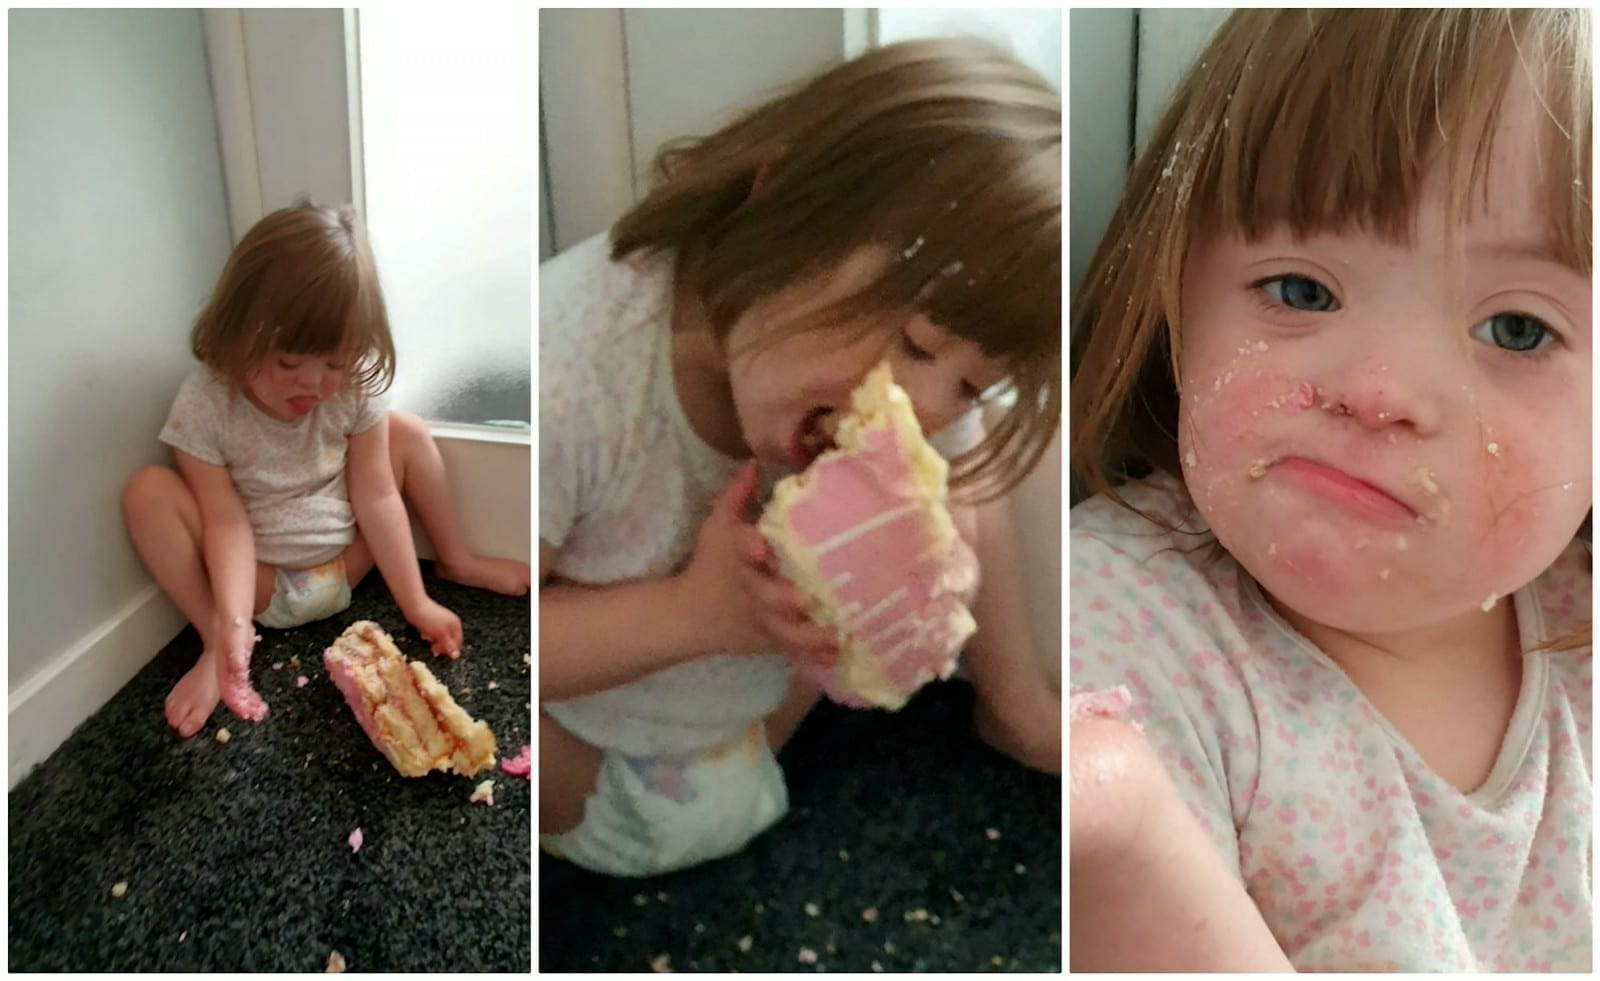 Mum Found Five-Year-Old Daughter Stuffing Her Face With Birthday Cake She'd Stolen From The Living Room